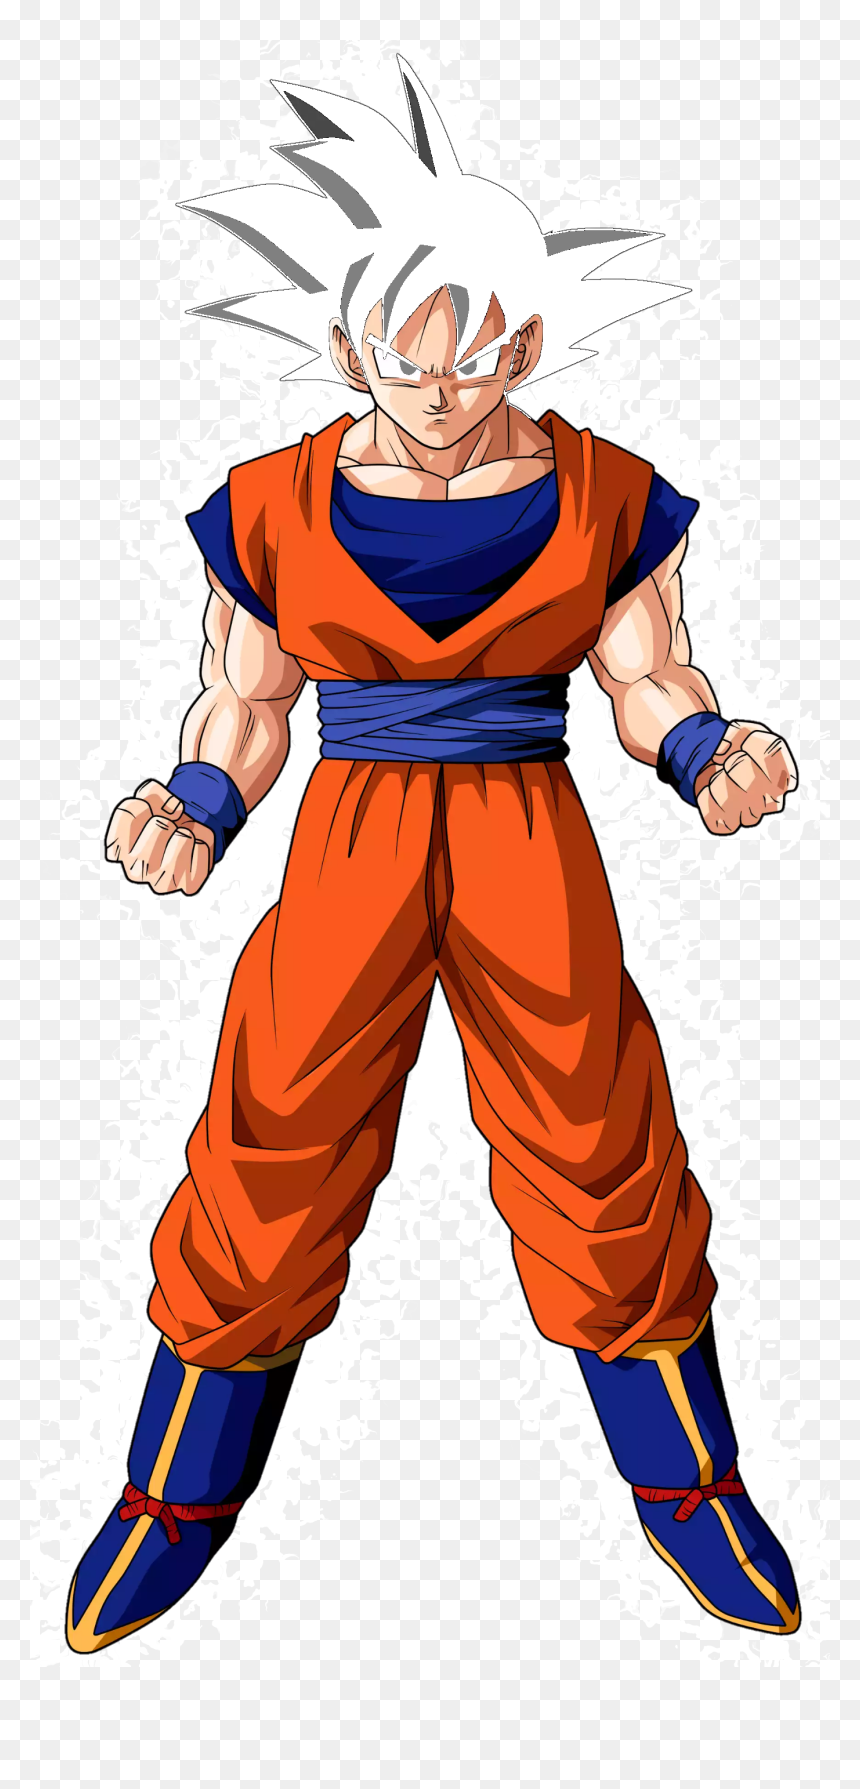 perfect mastered ultra instinct son goku hd png download vhv son goku hd png download